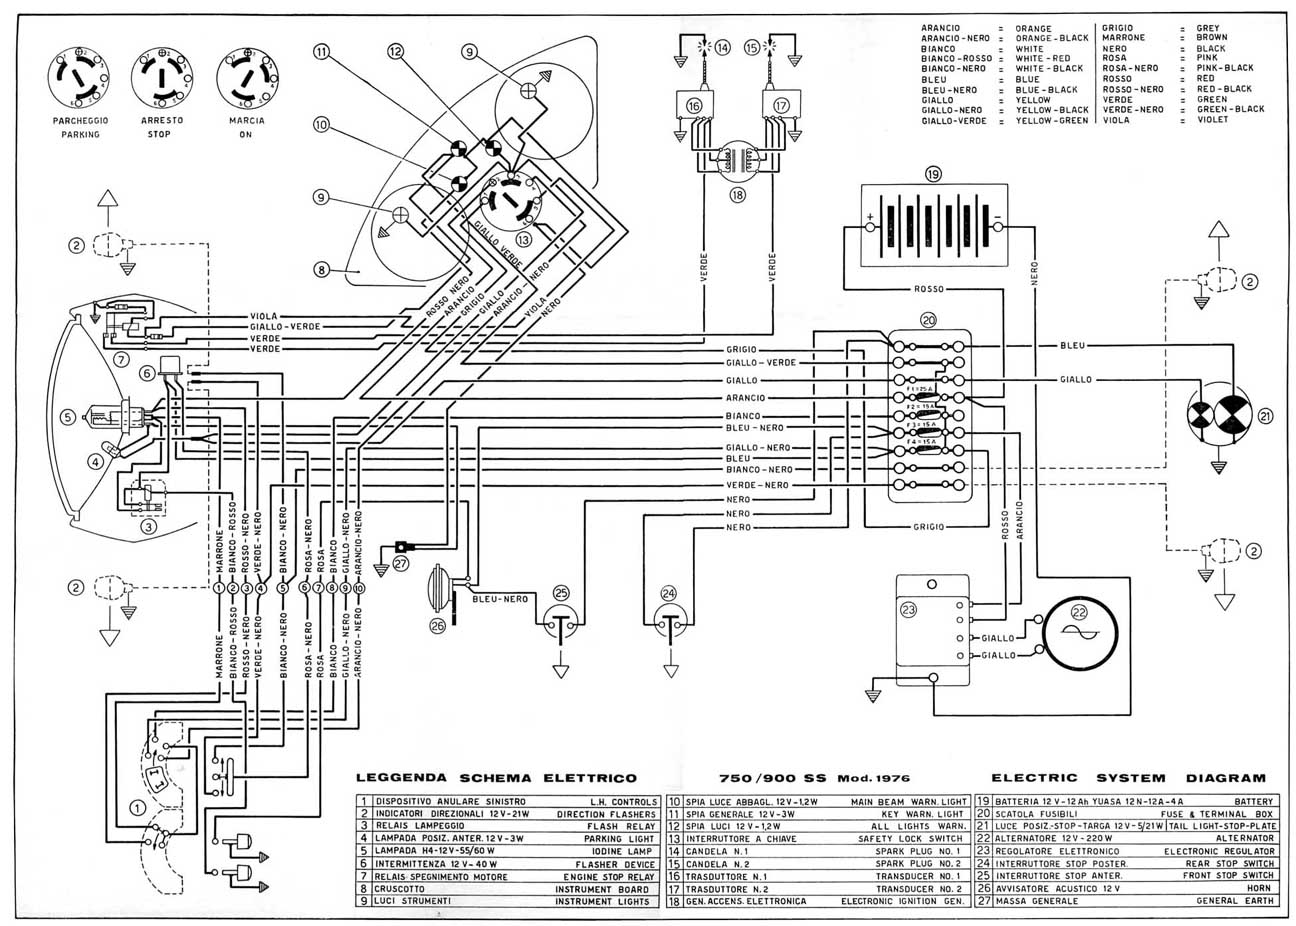 Ducati 796 wiring diagram wiring diagram ducati ignition wiring diagram ducati 796 wiring diagram wiring diagramducati 200 wiring diagram wiring diagramducati gt 750 wiring diagram wiring